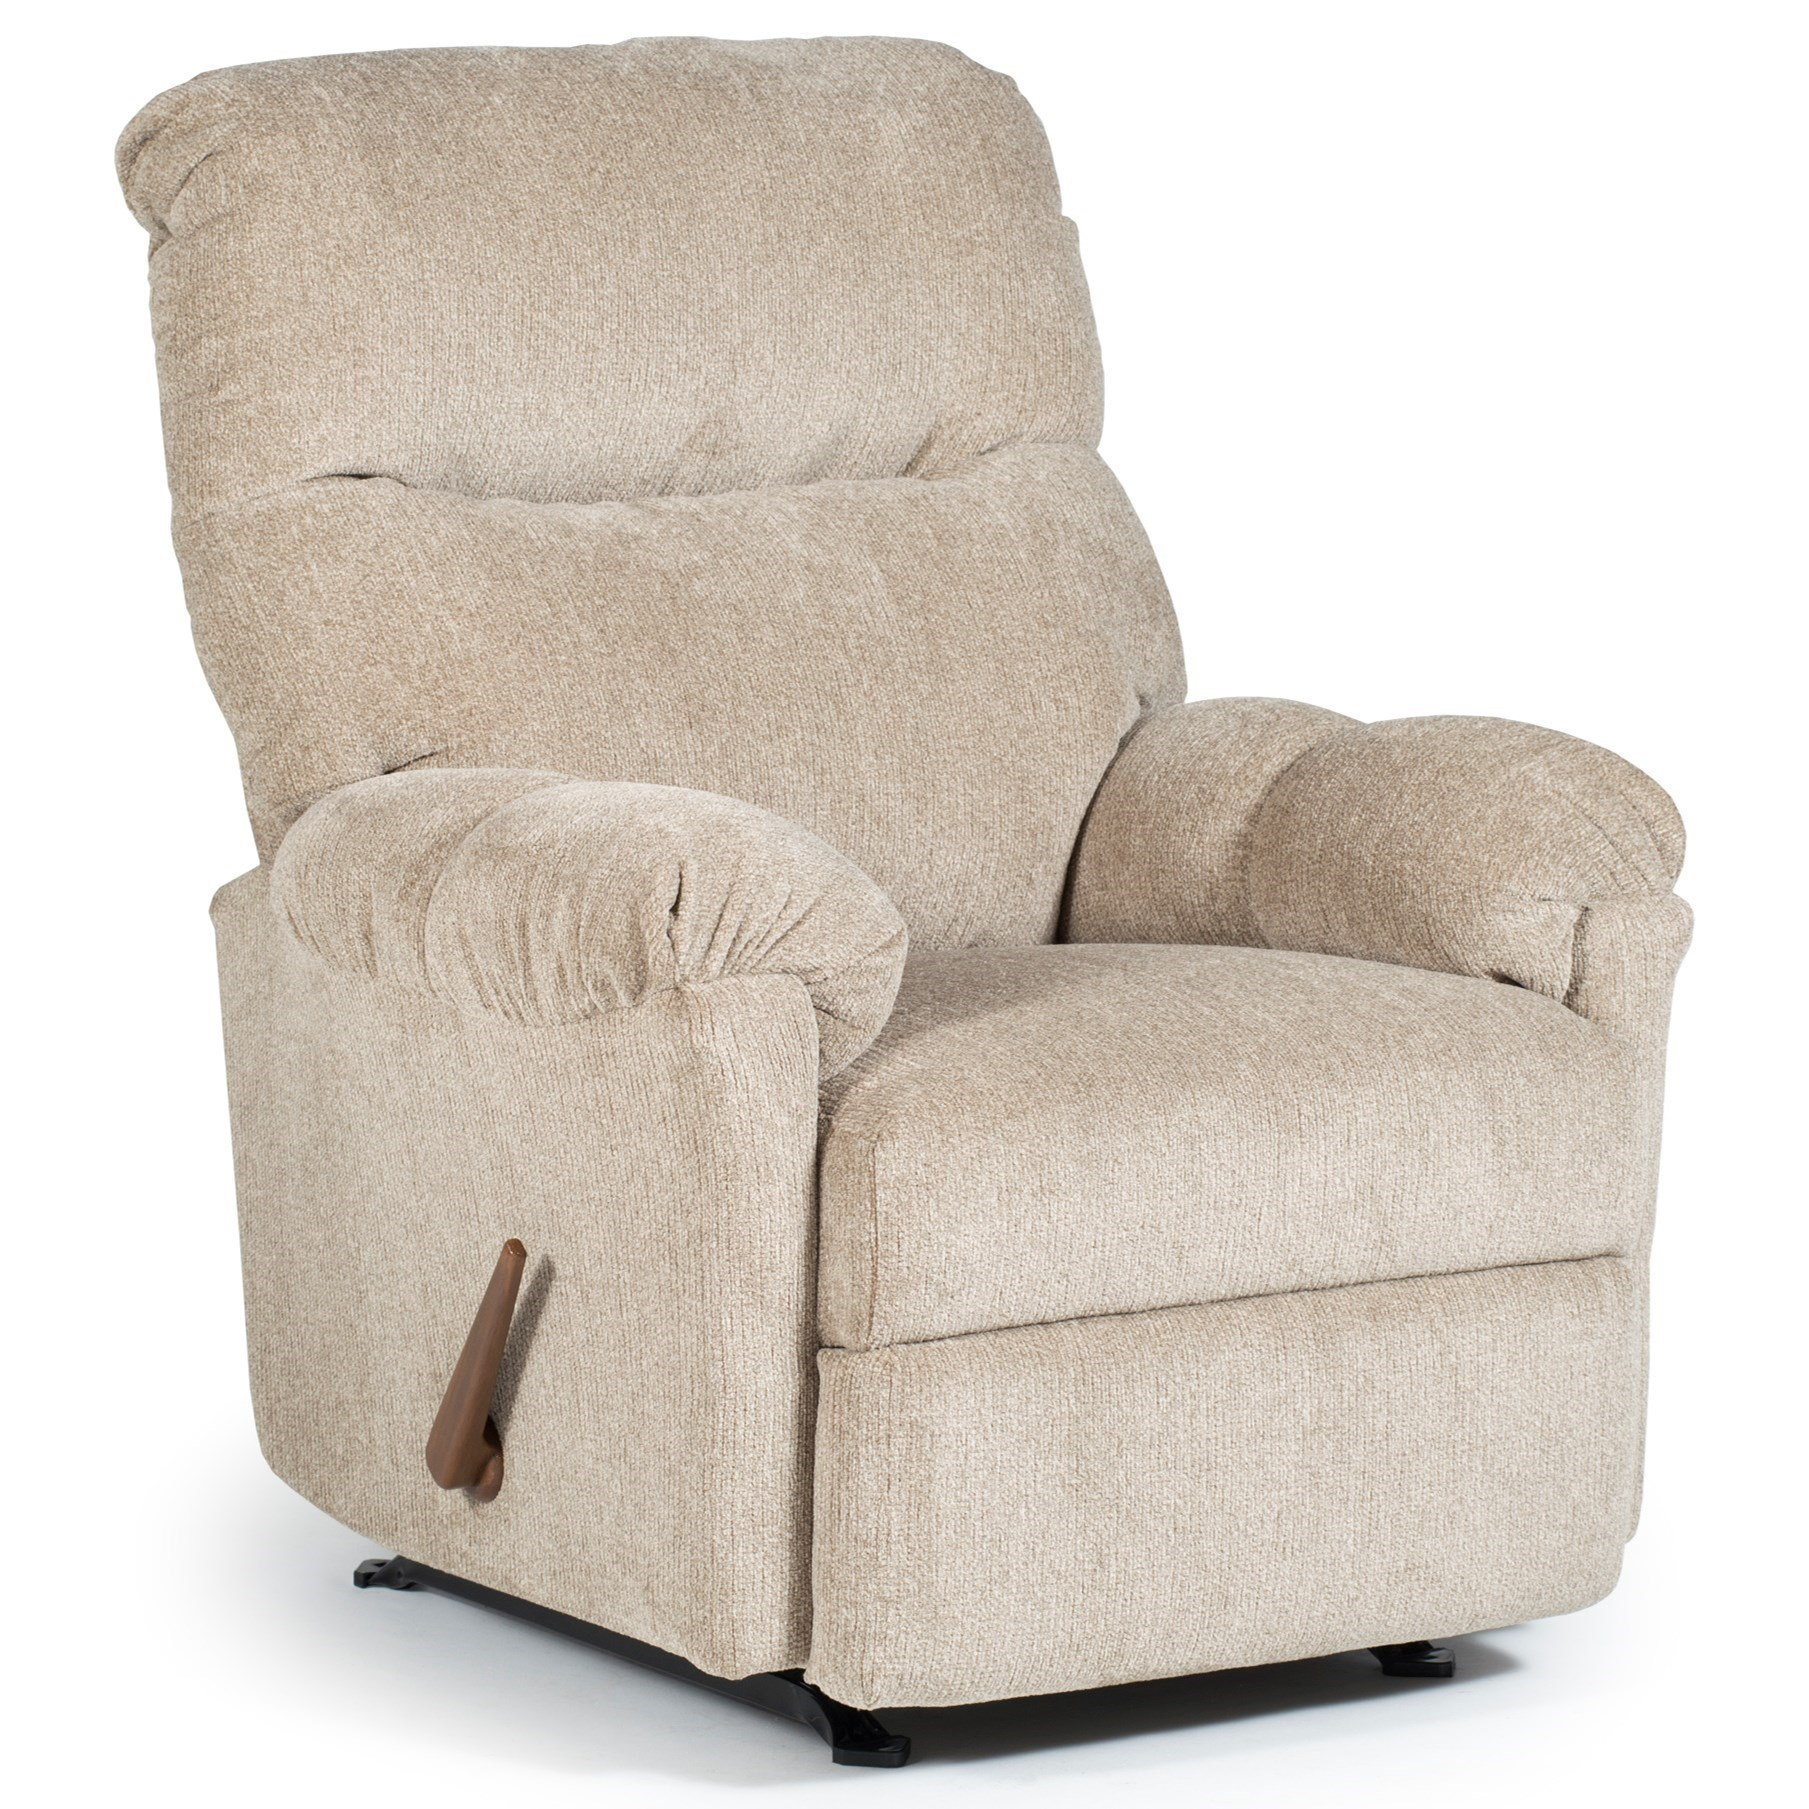 Medium Recliners Balmore Rocker Recliner by Best Home Furnishings at Baer's Furniture